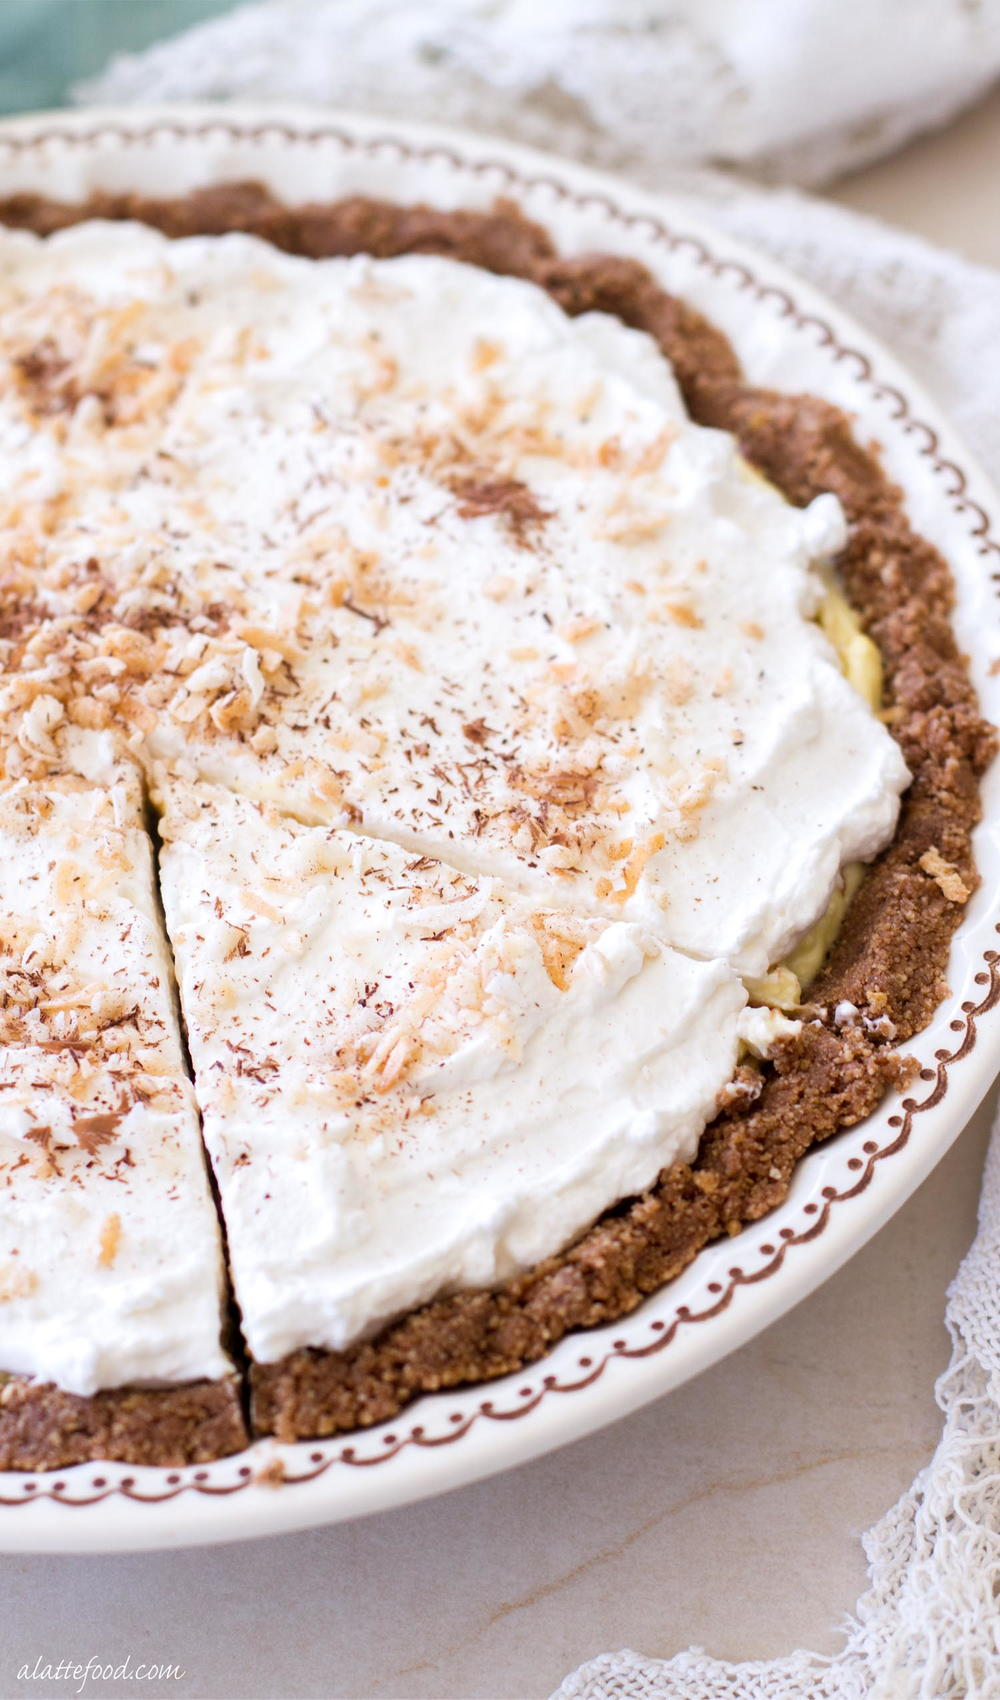 NoBake Chocolate Coconut Cream Pie  TheBestDessertRecipescom